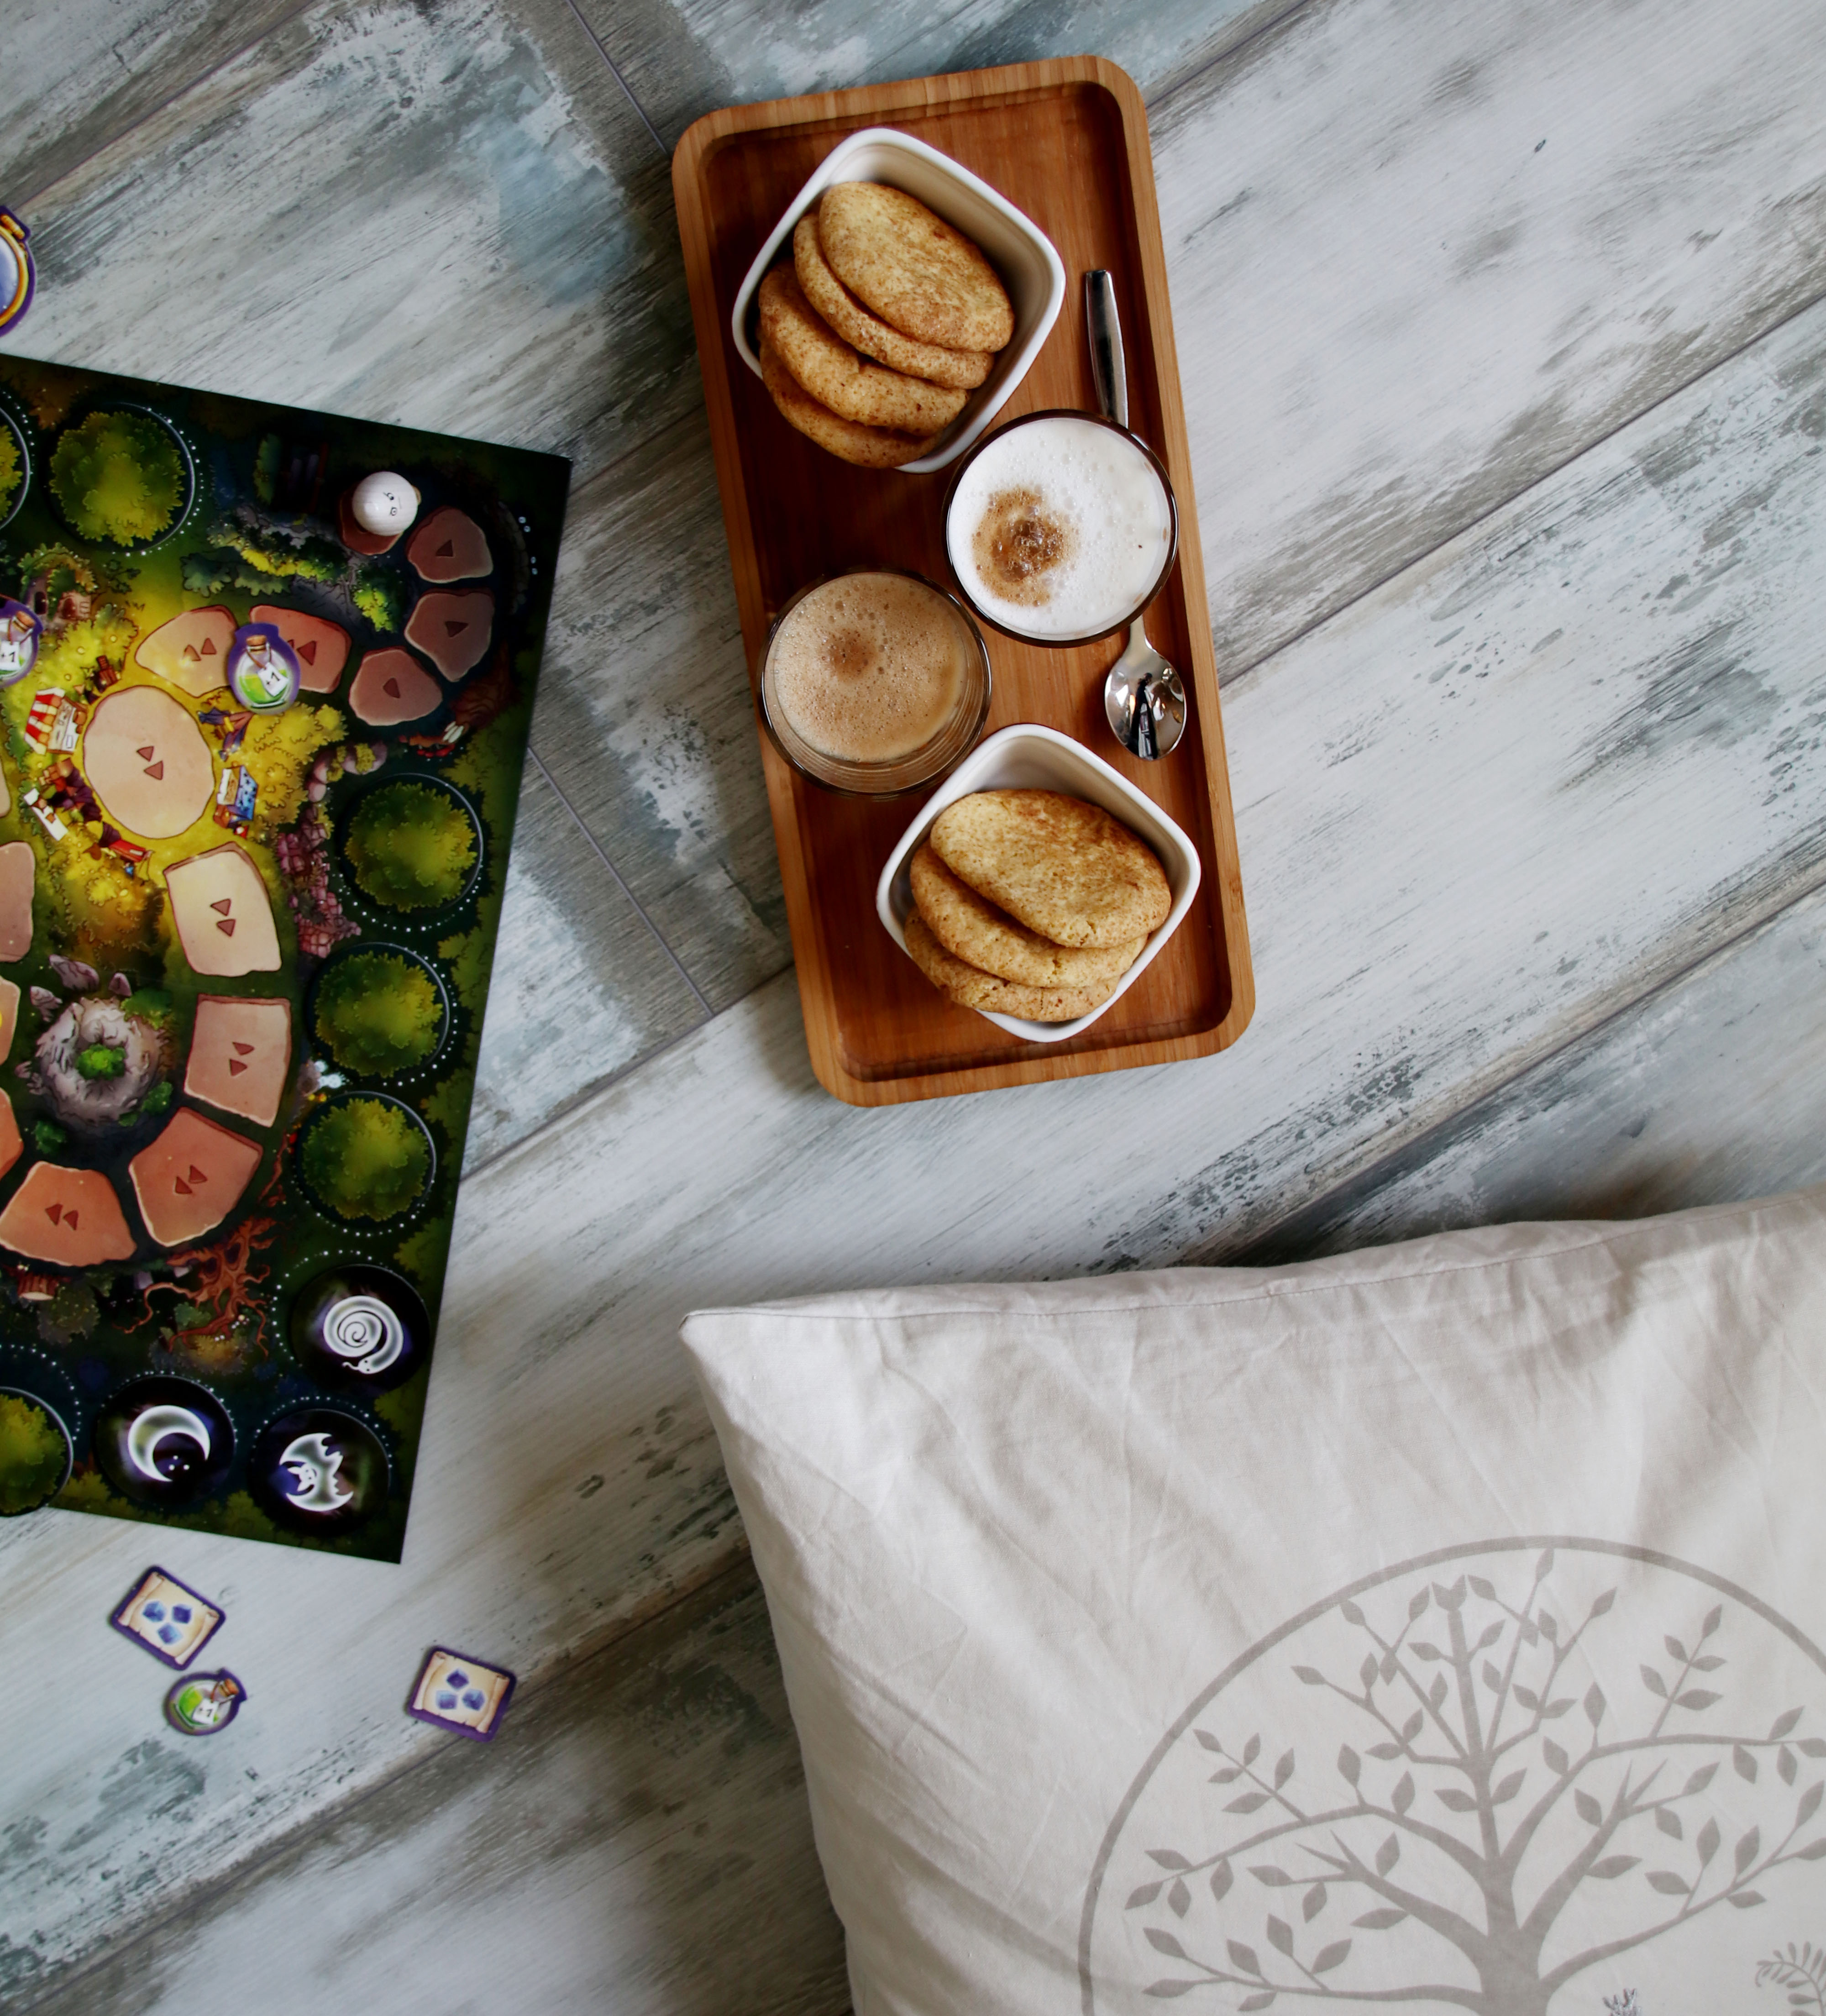 Spielenachmittag mit Zauberei hoch drei und Snickerdoodles // Board Game Time and Snickerdoodles by http://babyrockmyday.com/snickerdoodles/